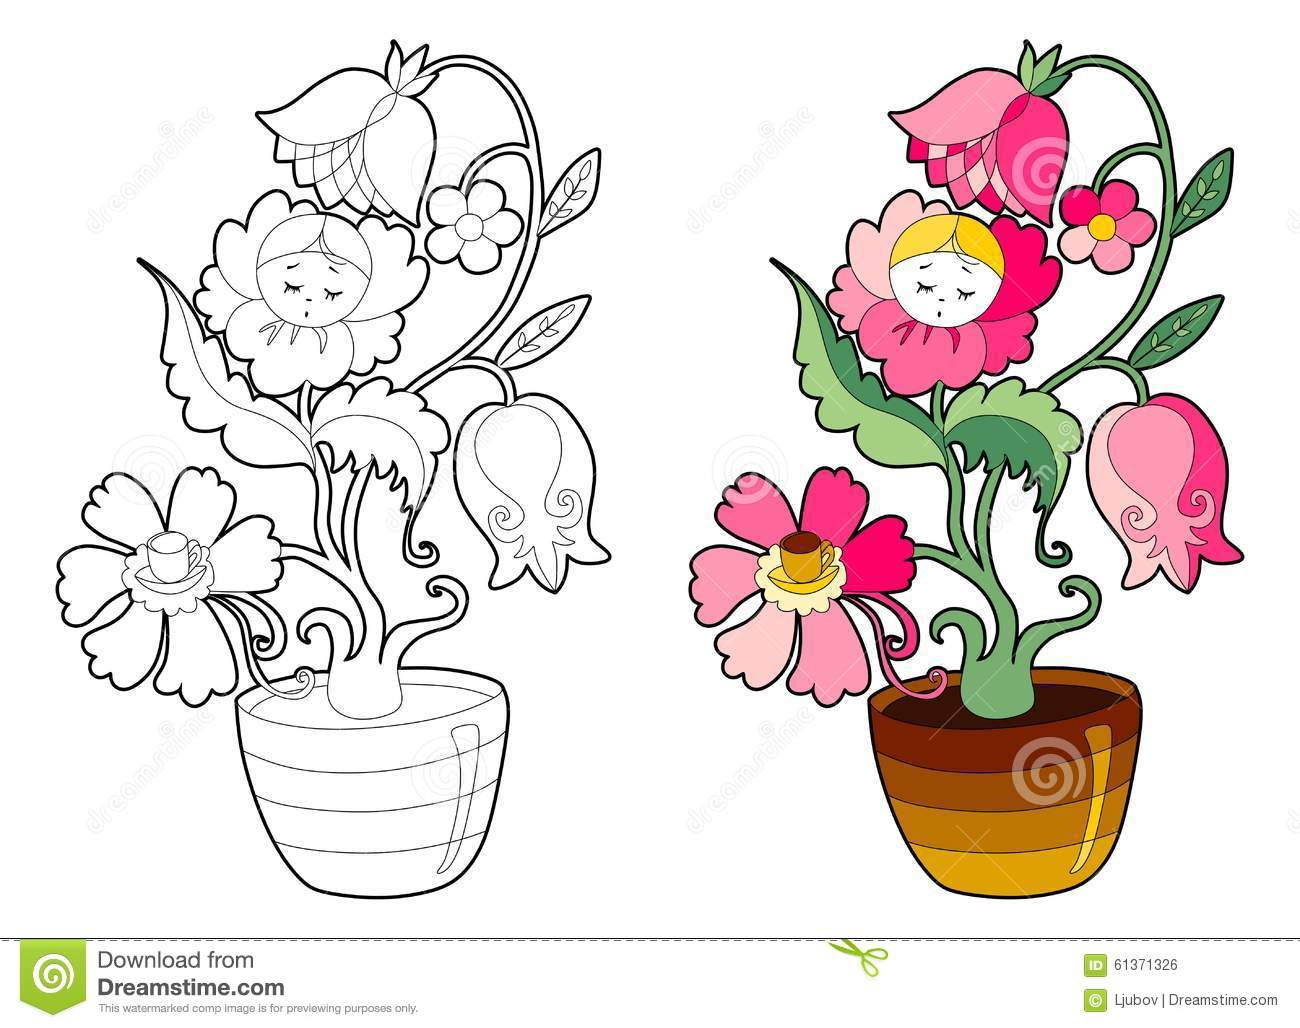 Royalty Free Vector Download Coloring Book With Fairy Flower